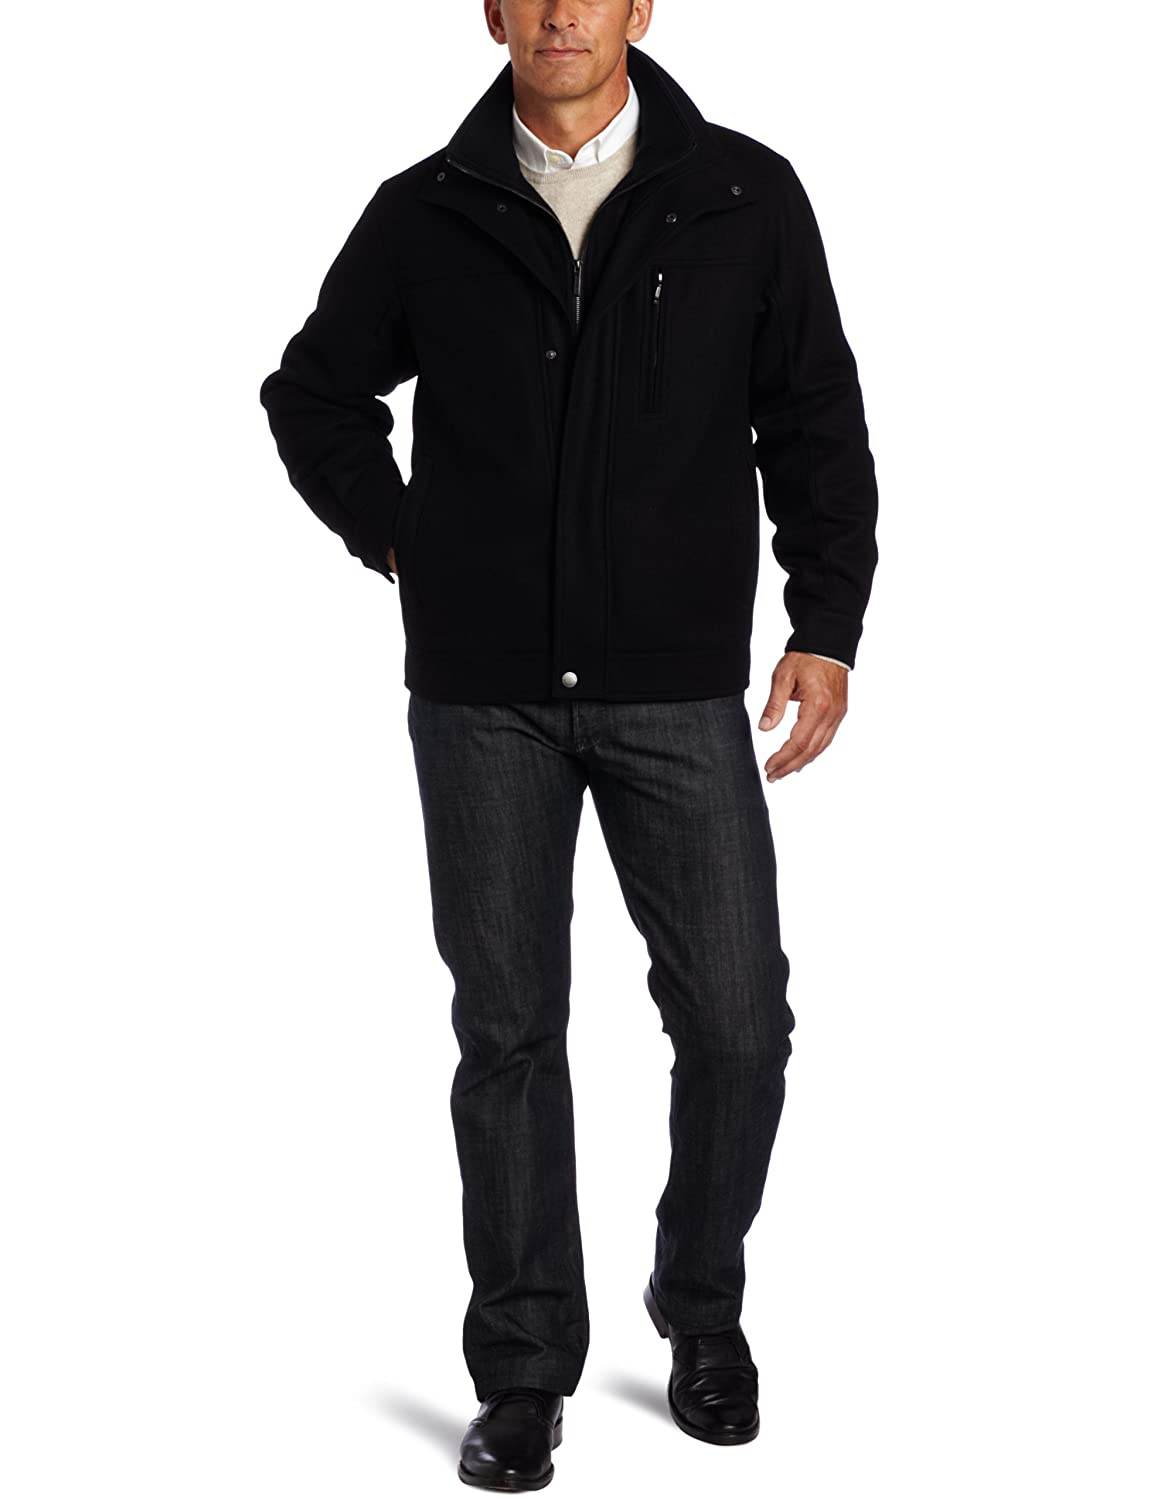 London Fog Men's Antrim Wool Hipster, Black, XX-Large 	$59.98